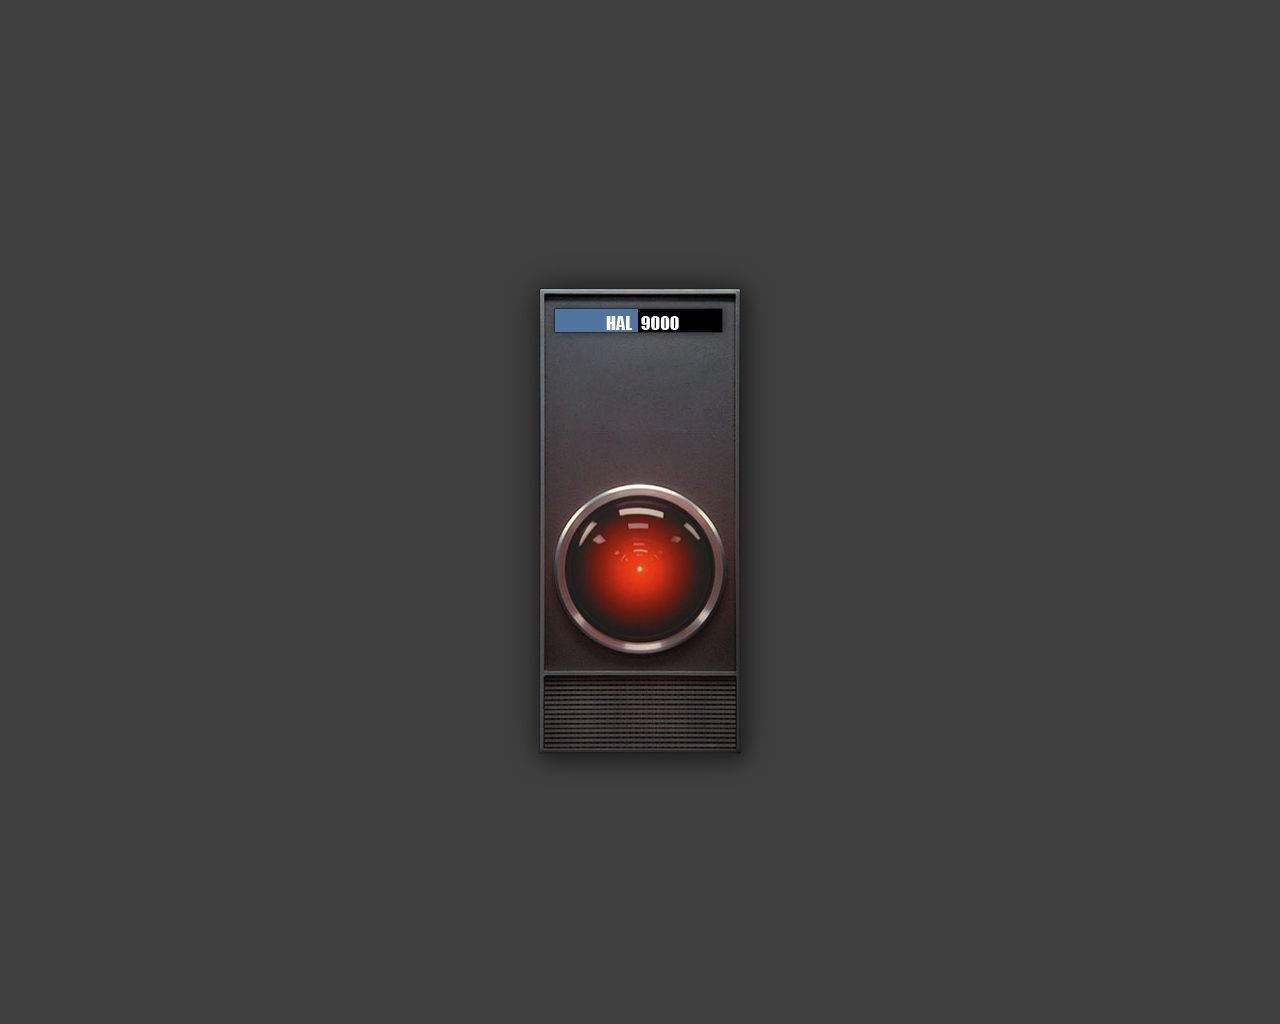 2001 A Space Odyssey Wallpapers Hd For Desktop Backgrounds